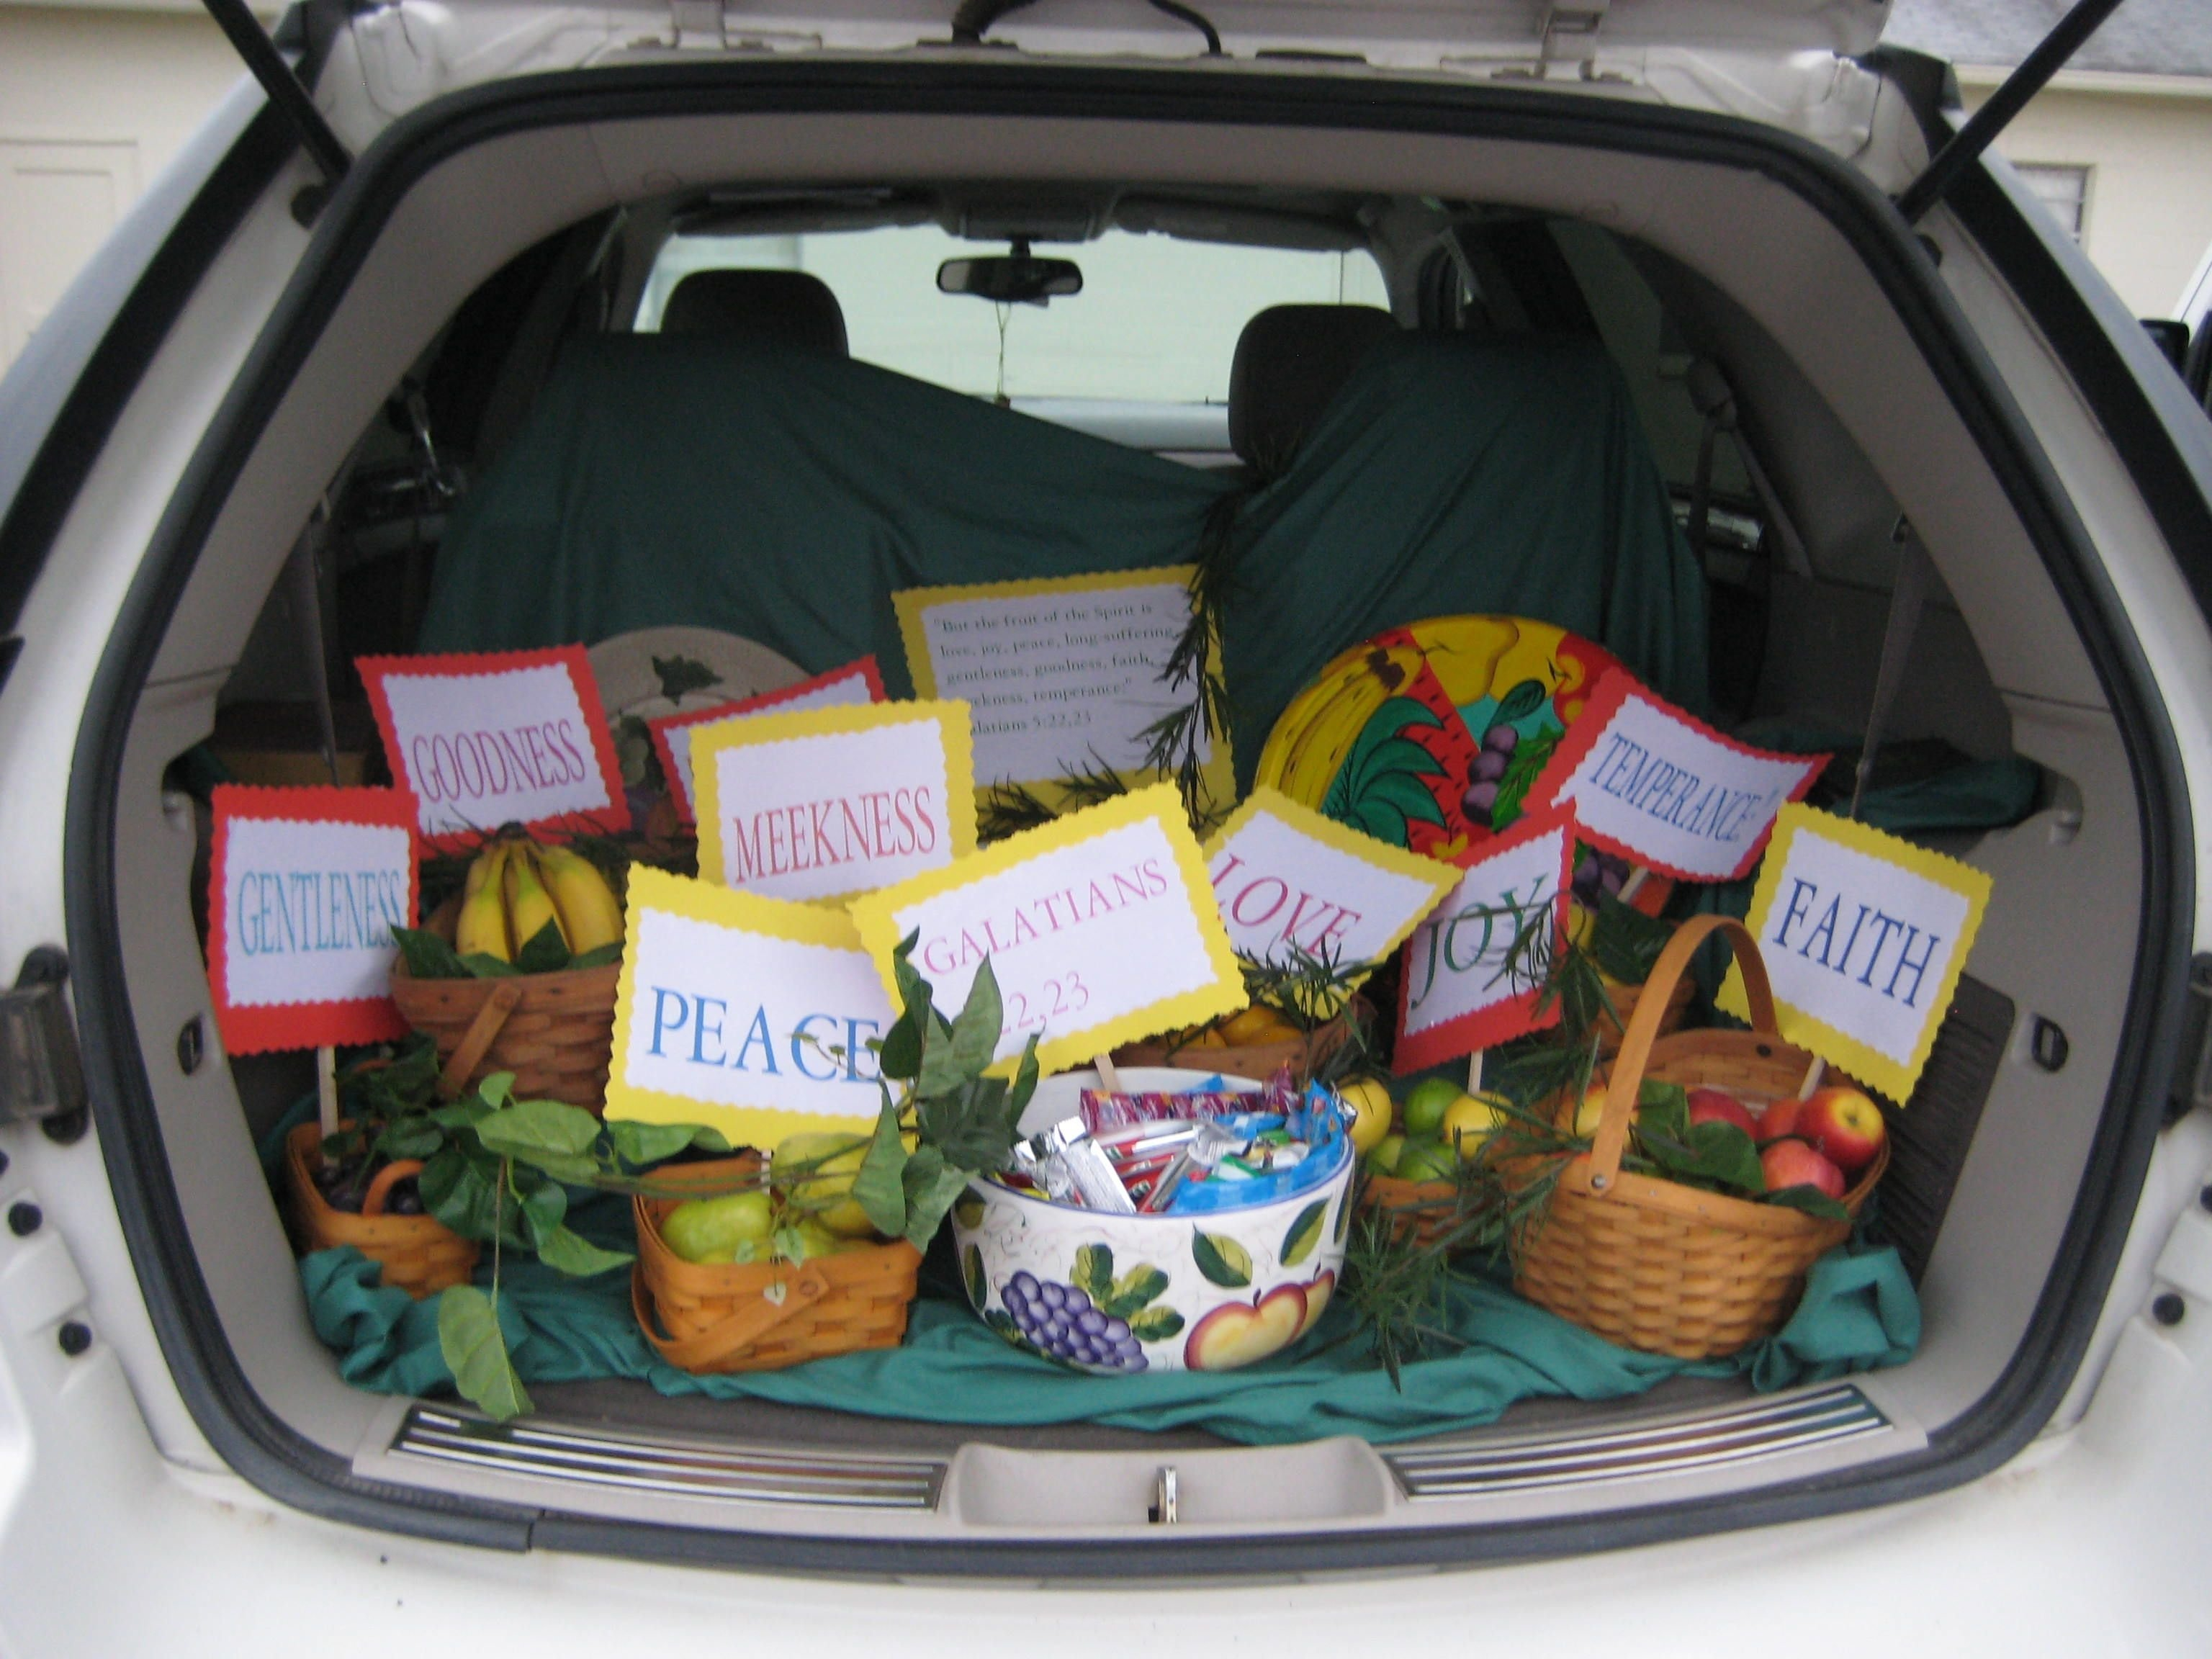 10 Attractive Biblical Trunk Or Treat Decorating Ideas bible story trunk or treat fruits of the spirit galatians 52223 1 2020